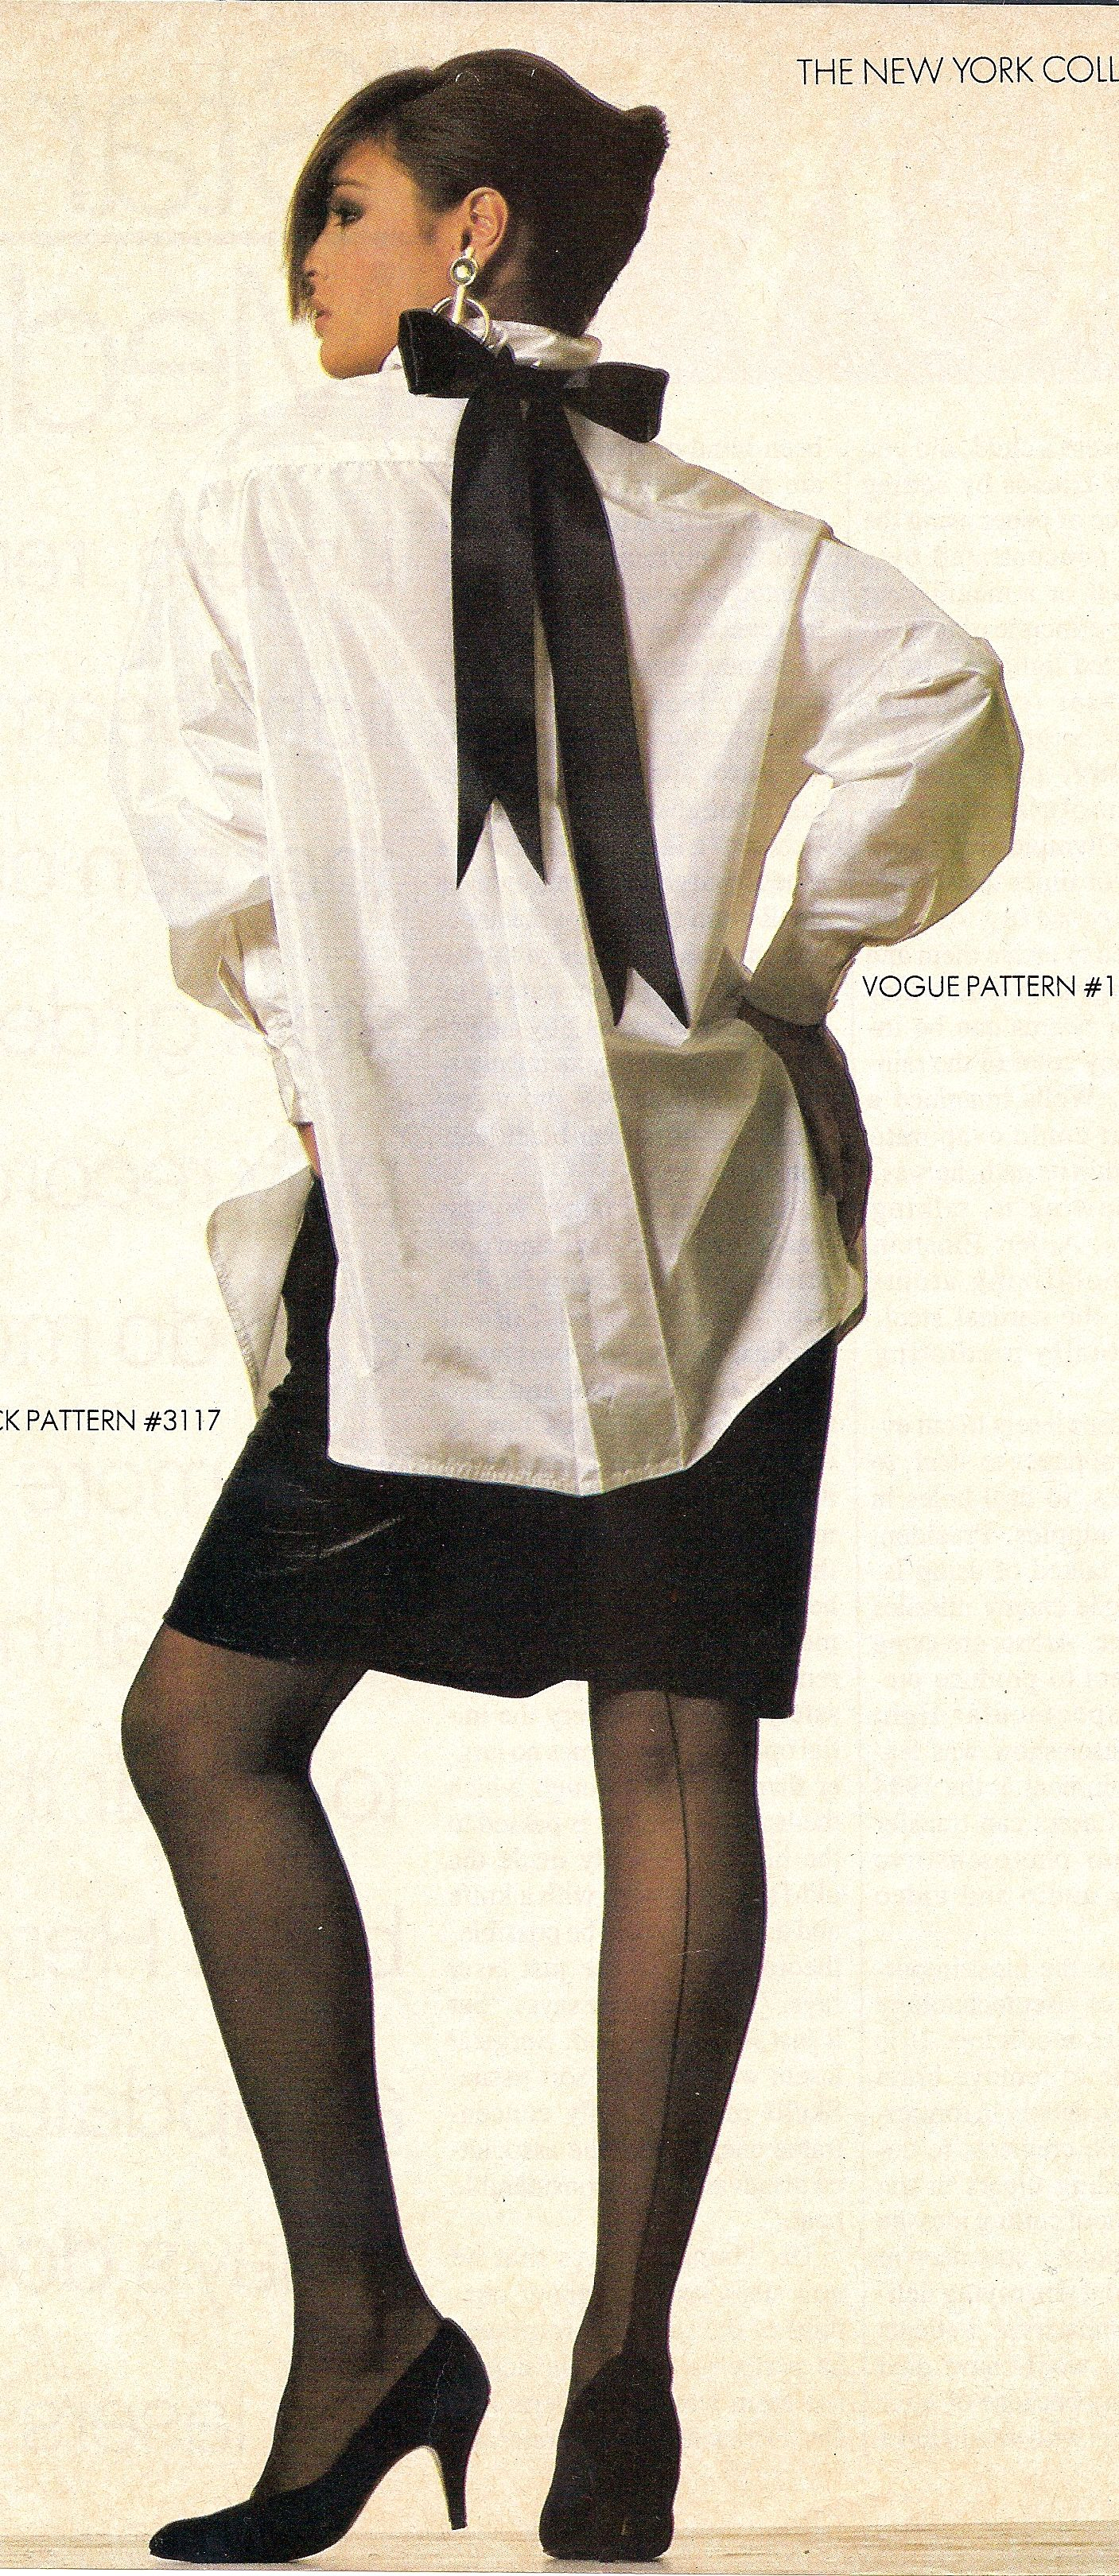 late '80s/early '90s | 1990's FASHION PHOTOS | Pinterest Late 90s Fashion